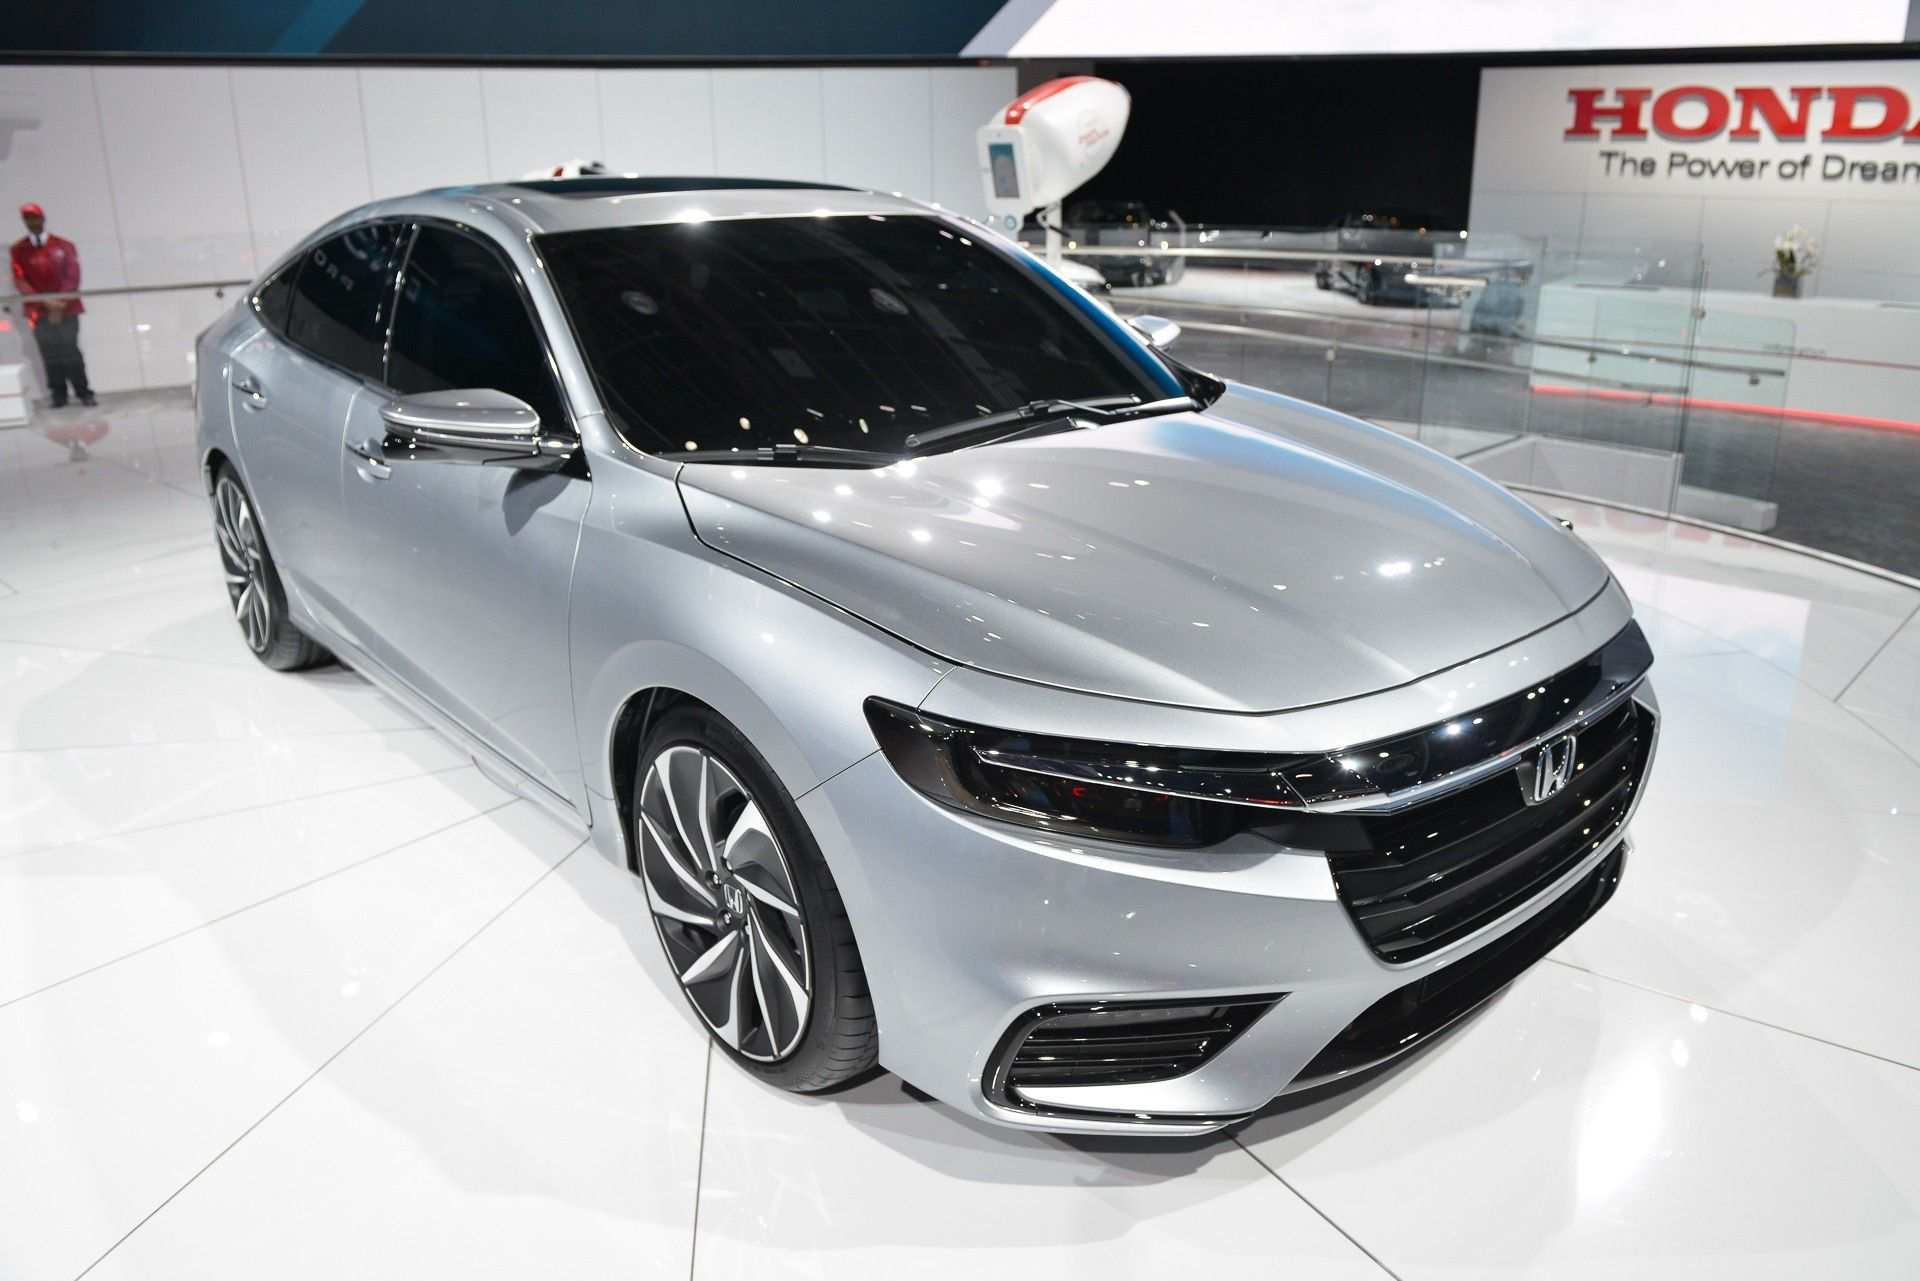 79 New Best Honda Kombi 2019 First Drive Redesign and Concept with Best Honda Kombi 2019 First Drive